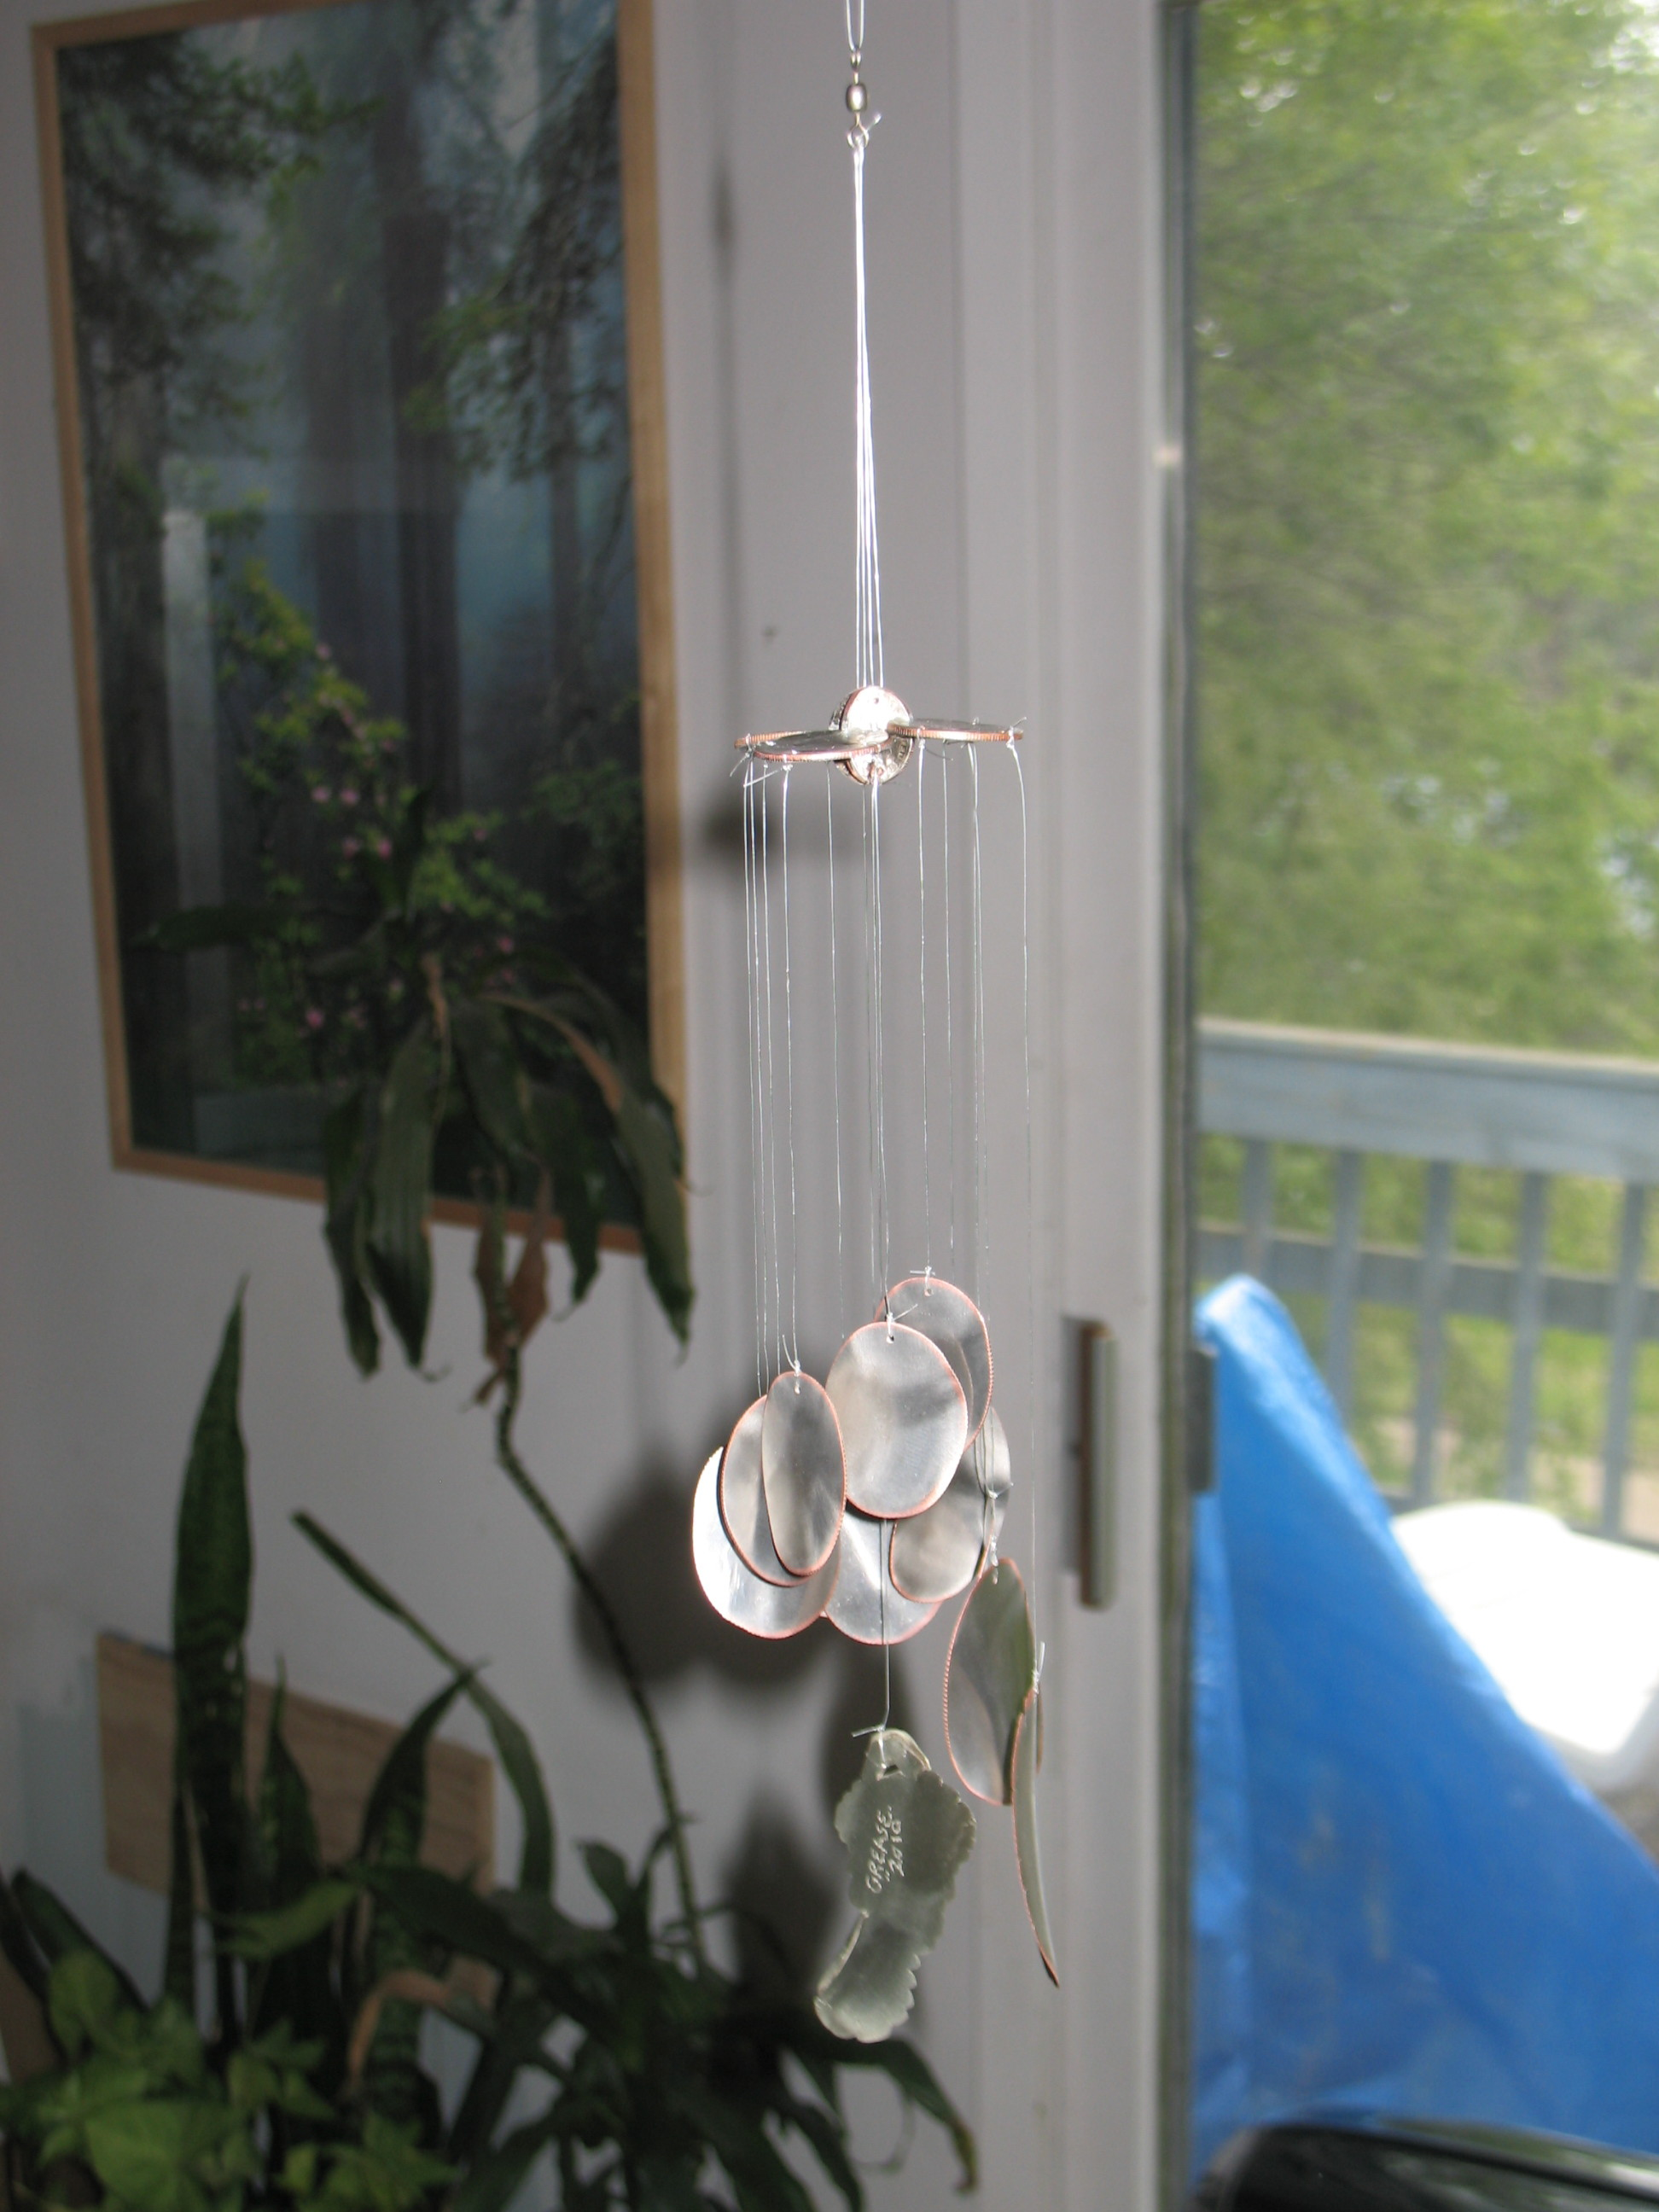 Picture of Tying Up the Fish Line and Finished Chime